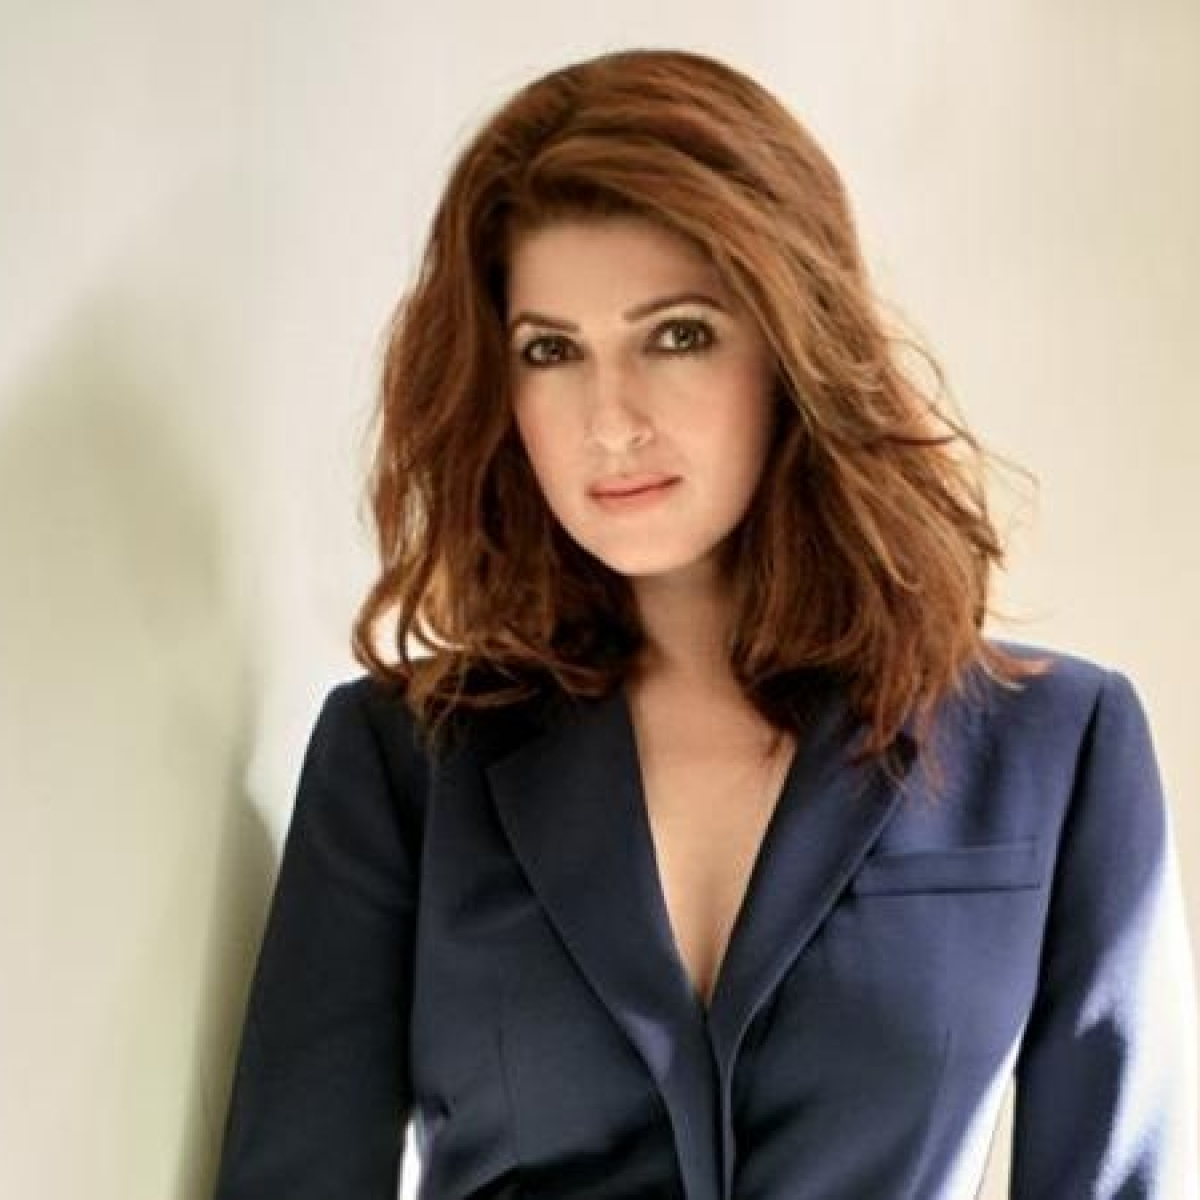 Twinkle Khanna to distribute 100 oxygen concentrators amid COVID-19 crisis